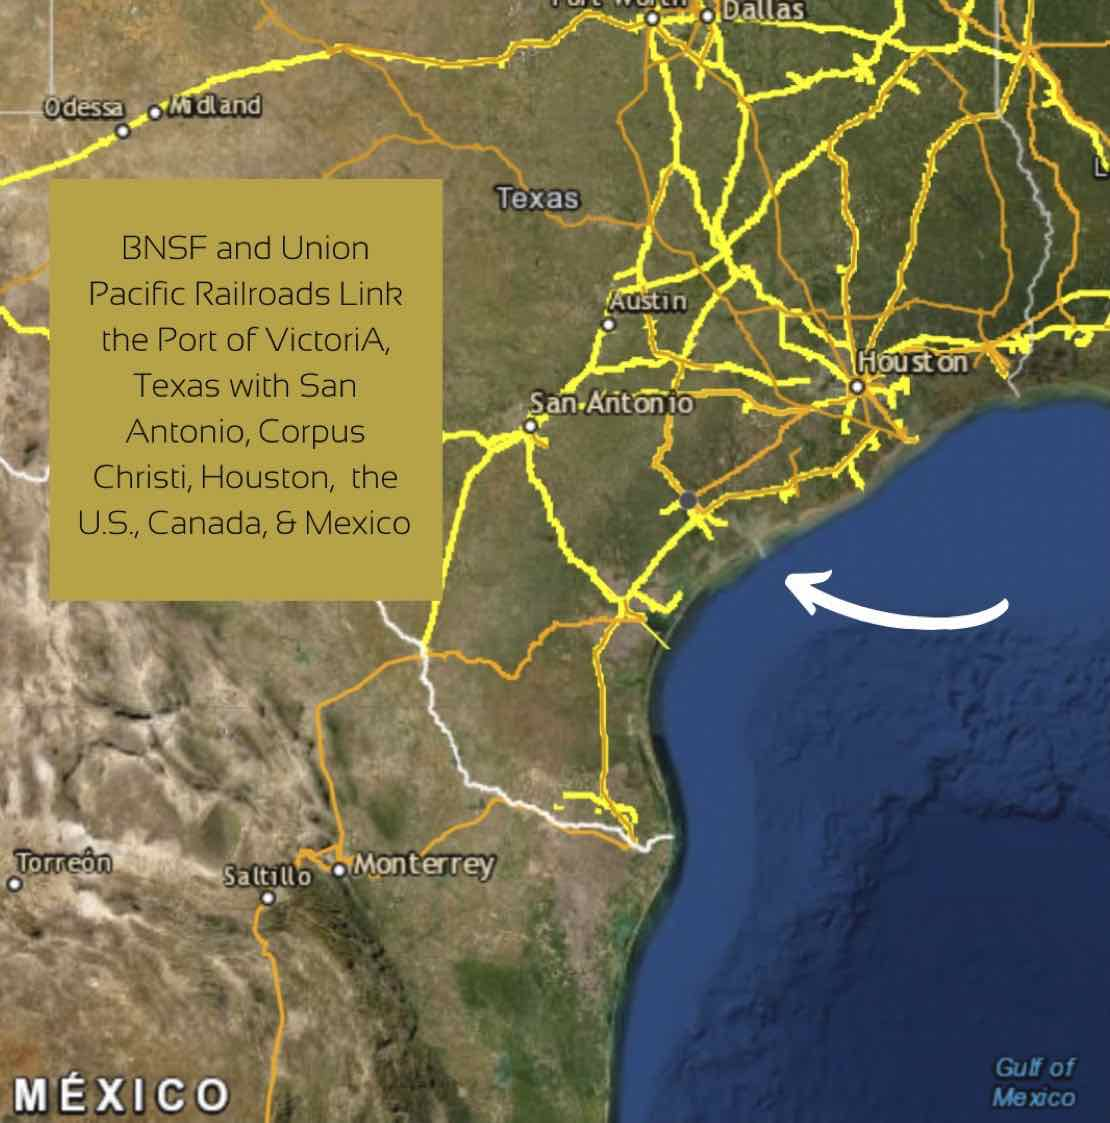 map of BNSF and Union Pacific rail lines